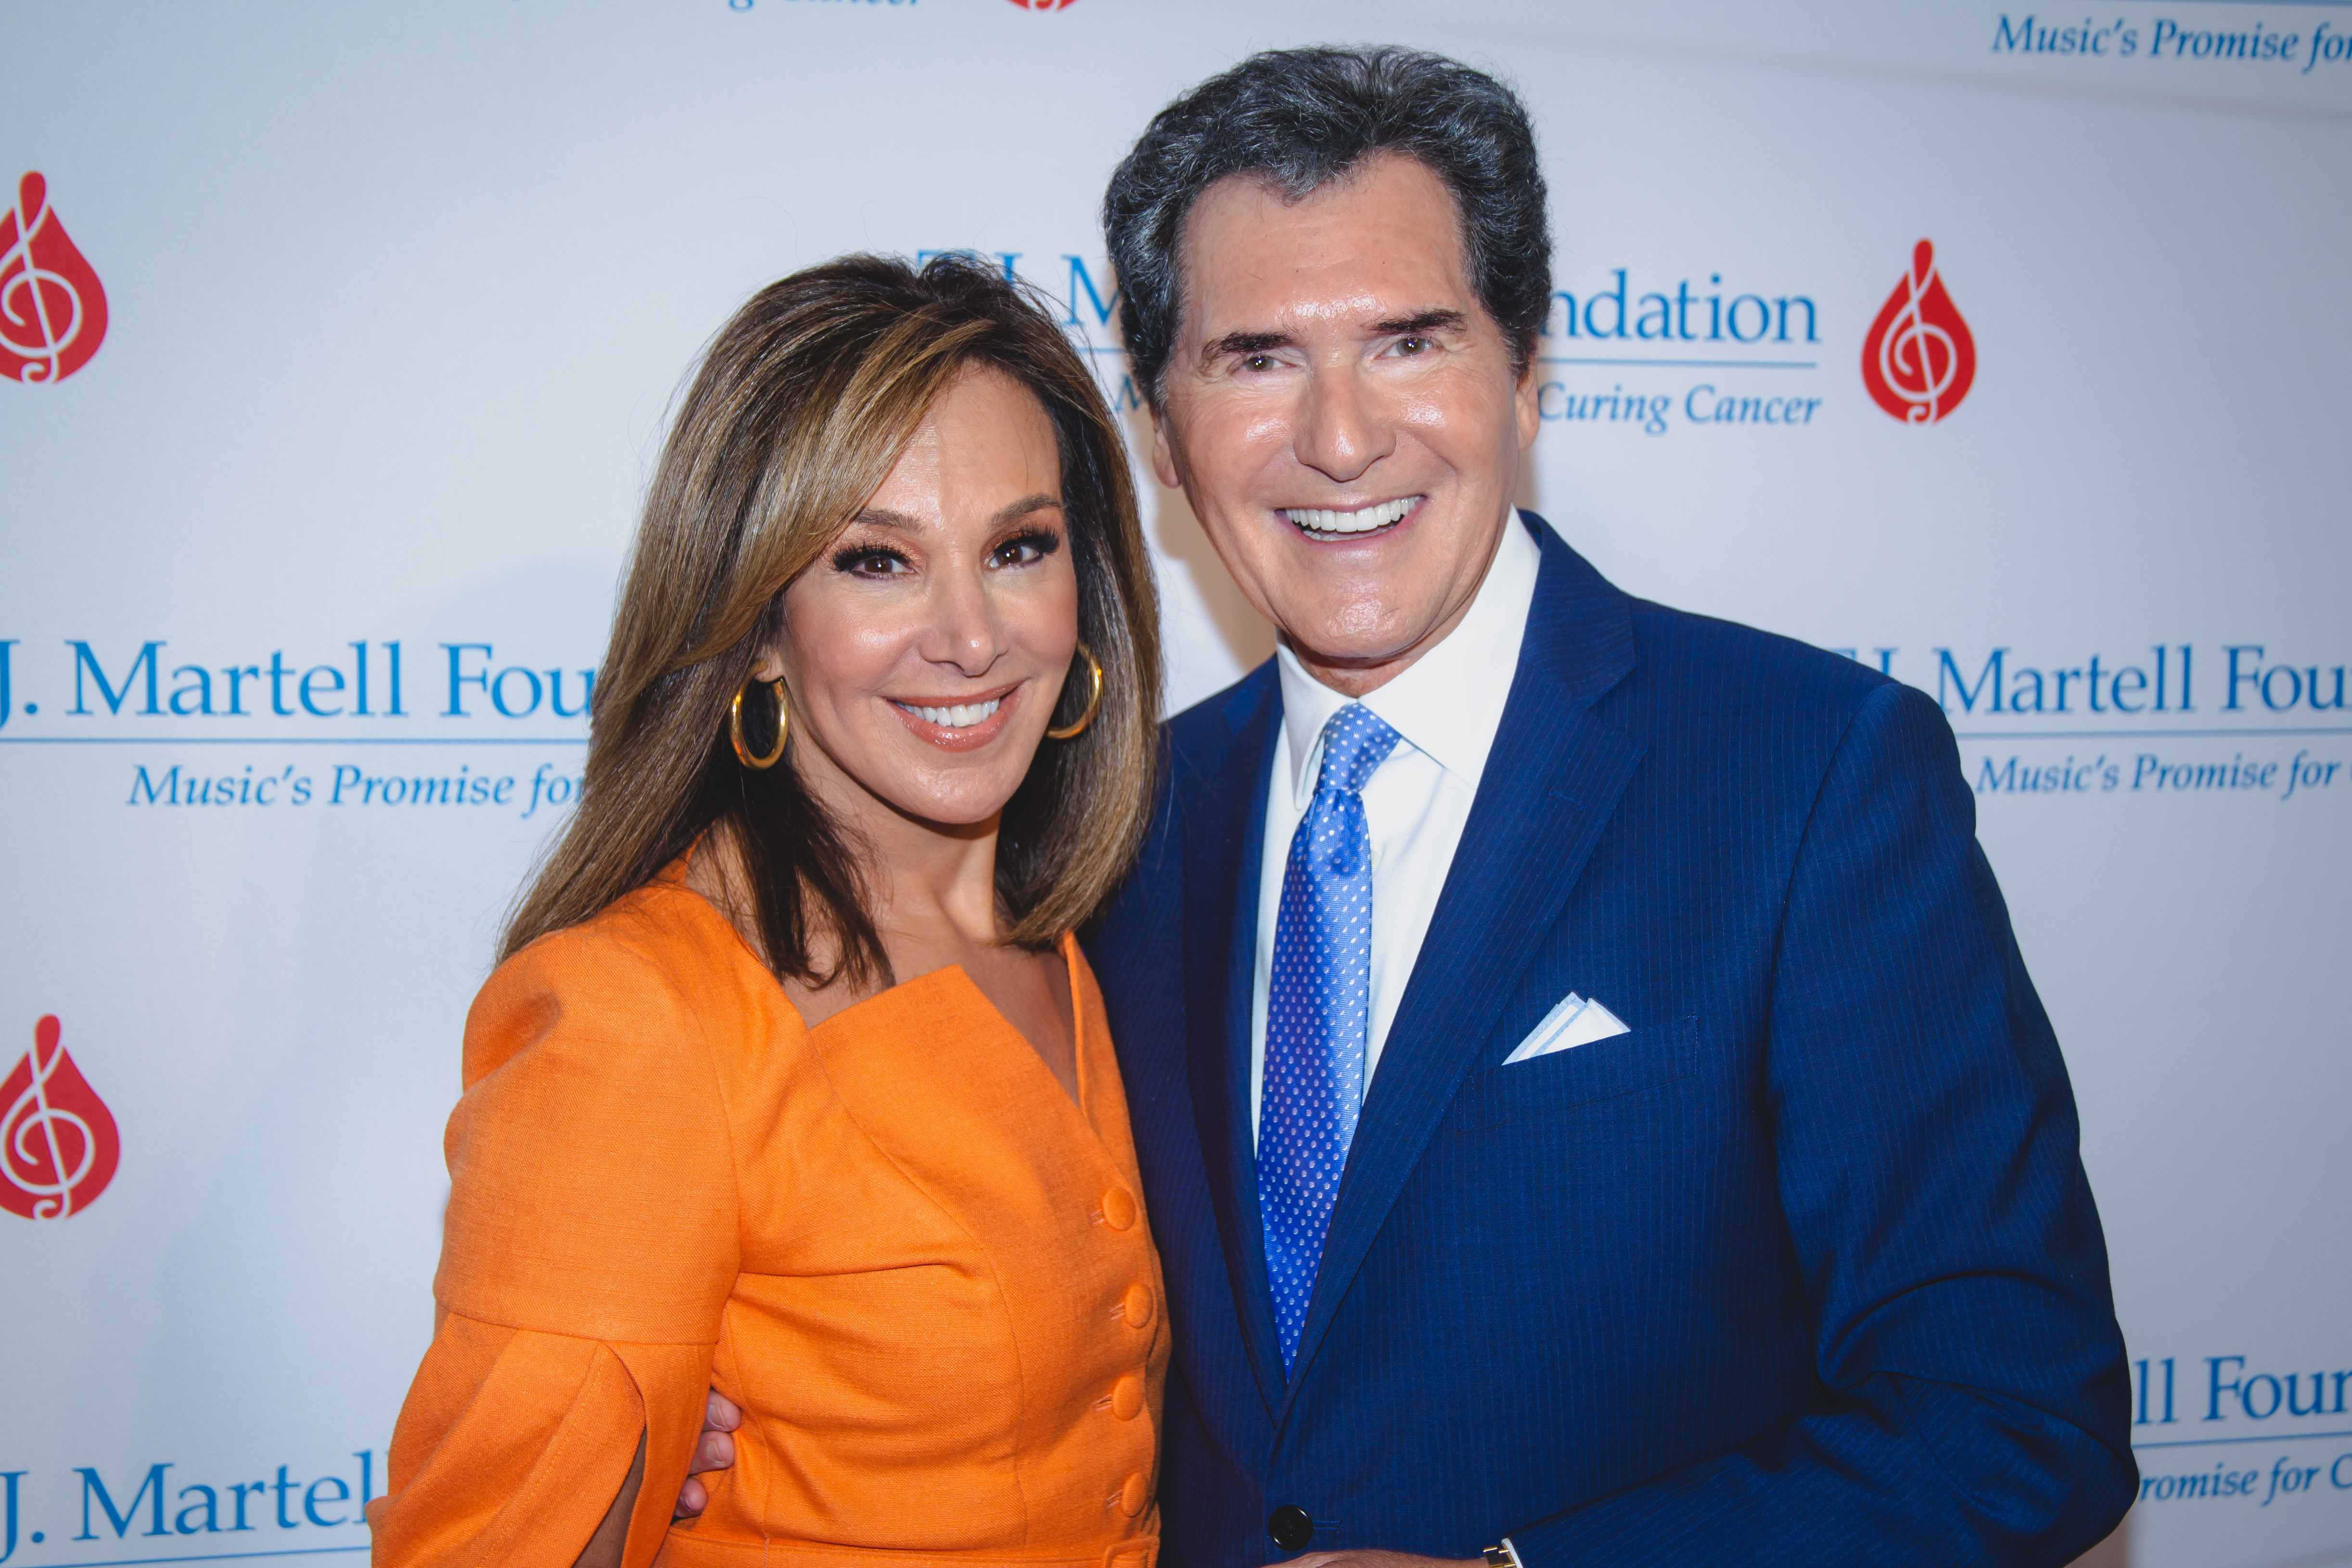 Rosanna Scotto from Good Day New Yor